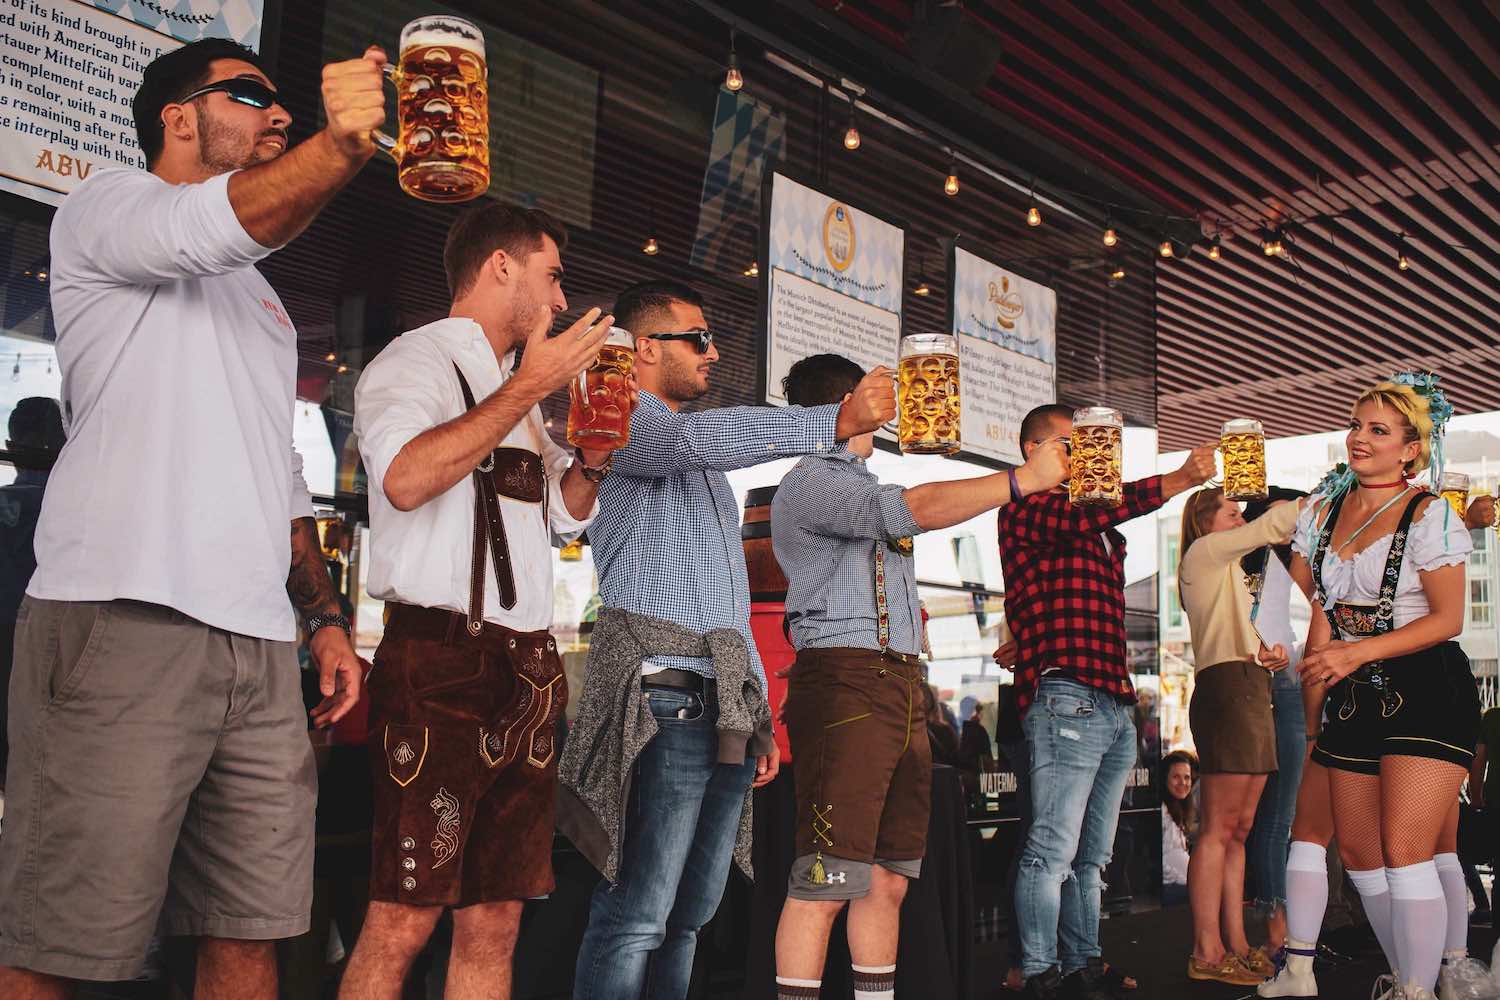 OktoberFest NYC 2019 Kicks off With Ceremonial Keg Tapping by Beer Cicerone, Anne Becerra for Sixth Annual Celebration